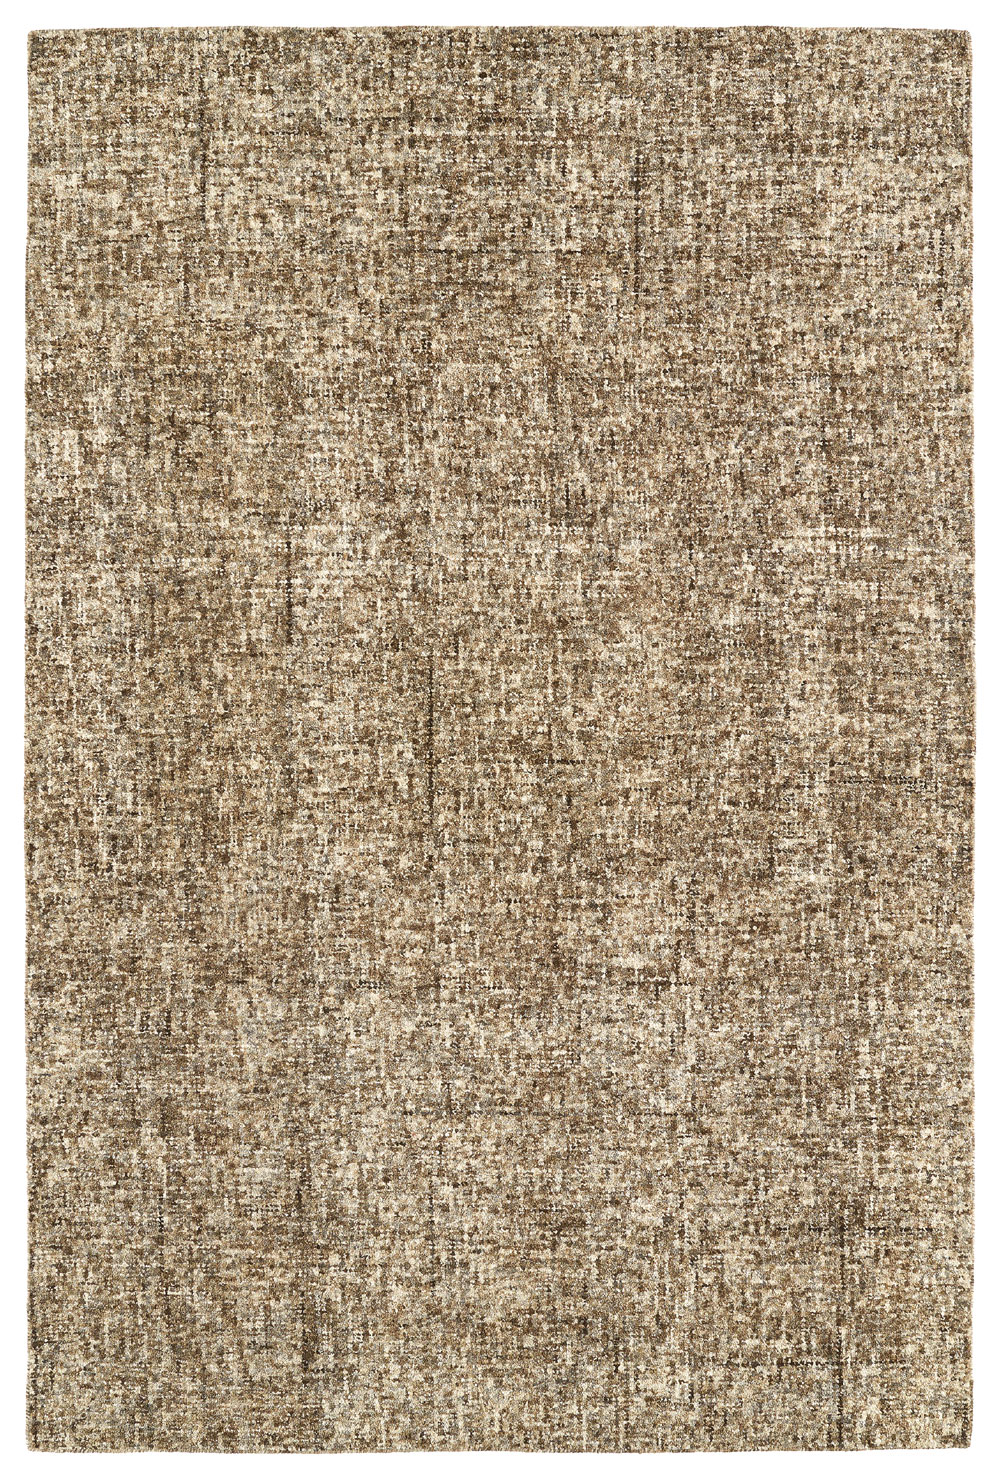 Dalyn Calisa CS5 Coffee Rug